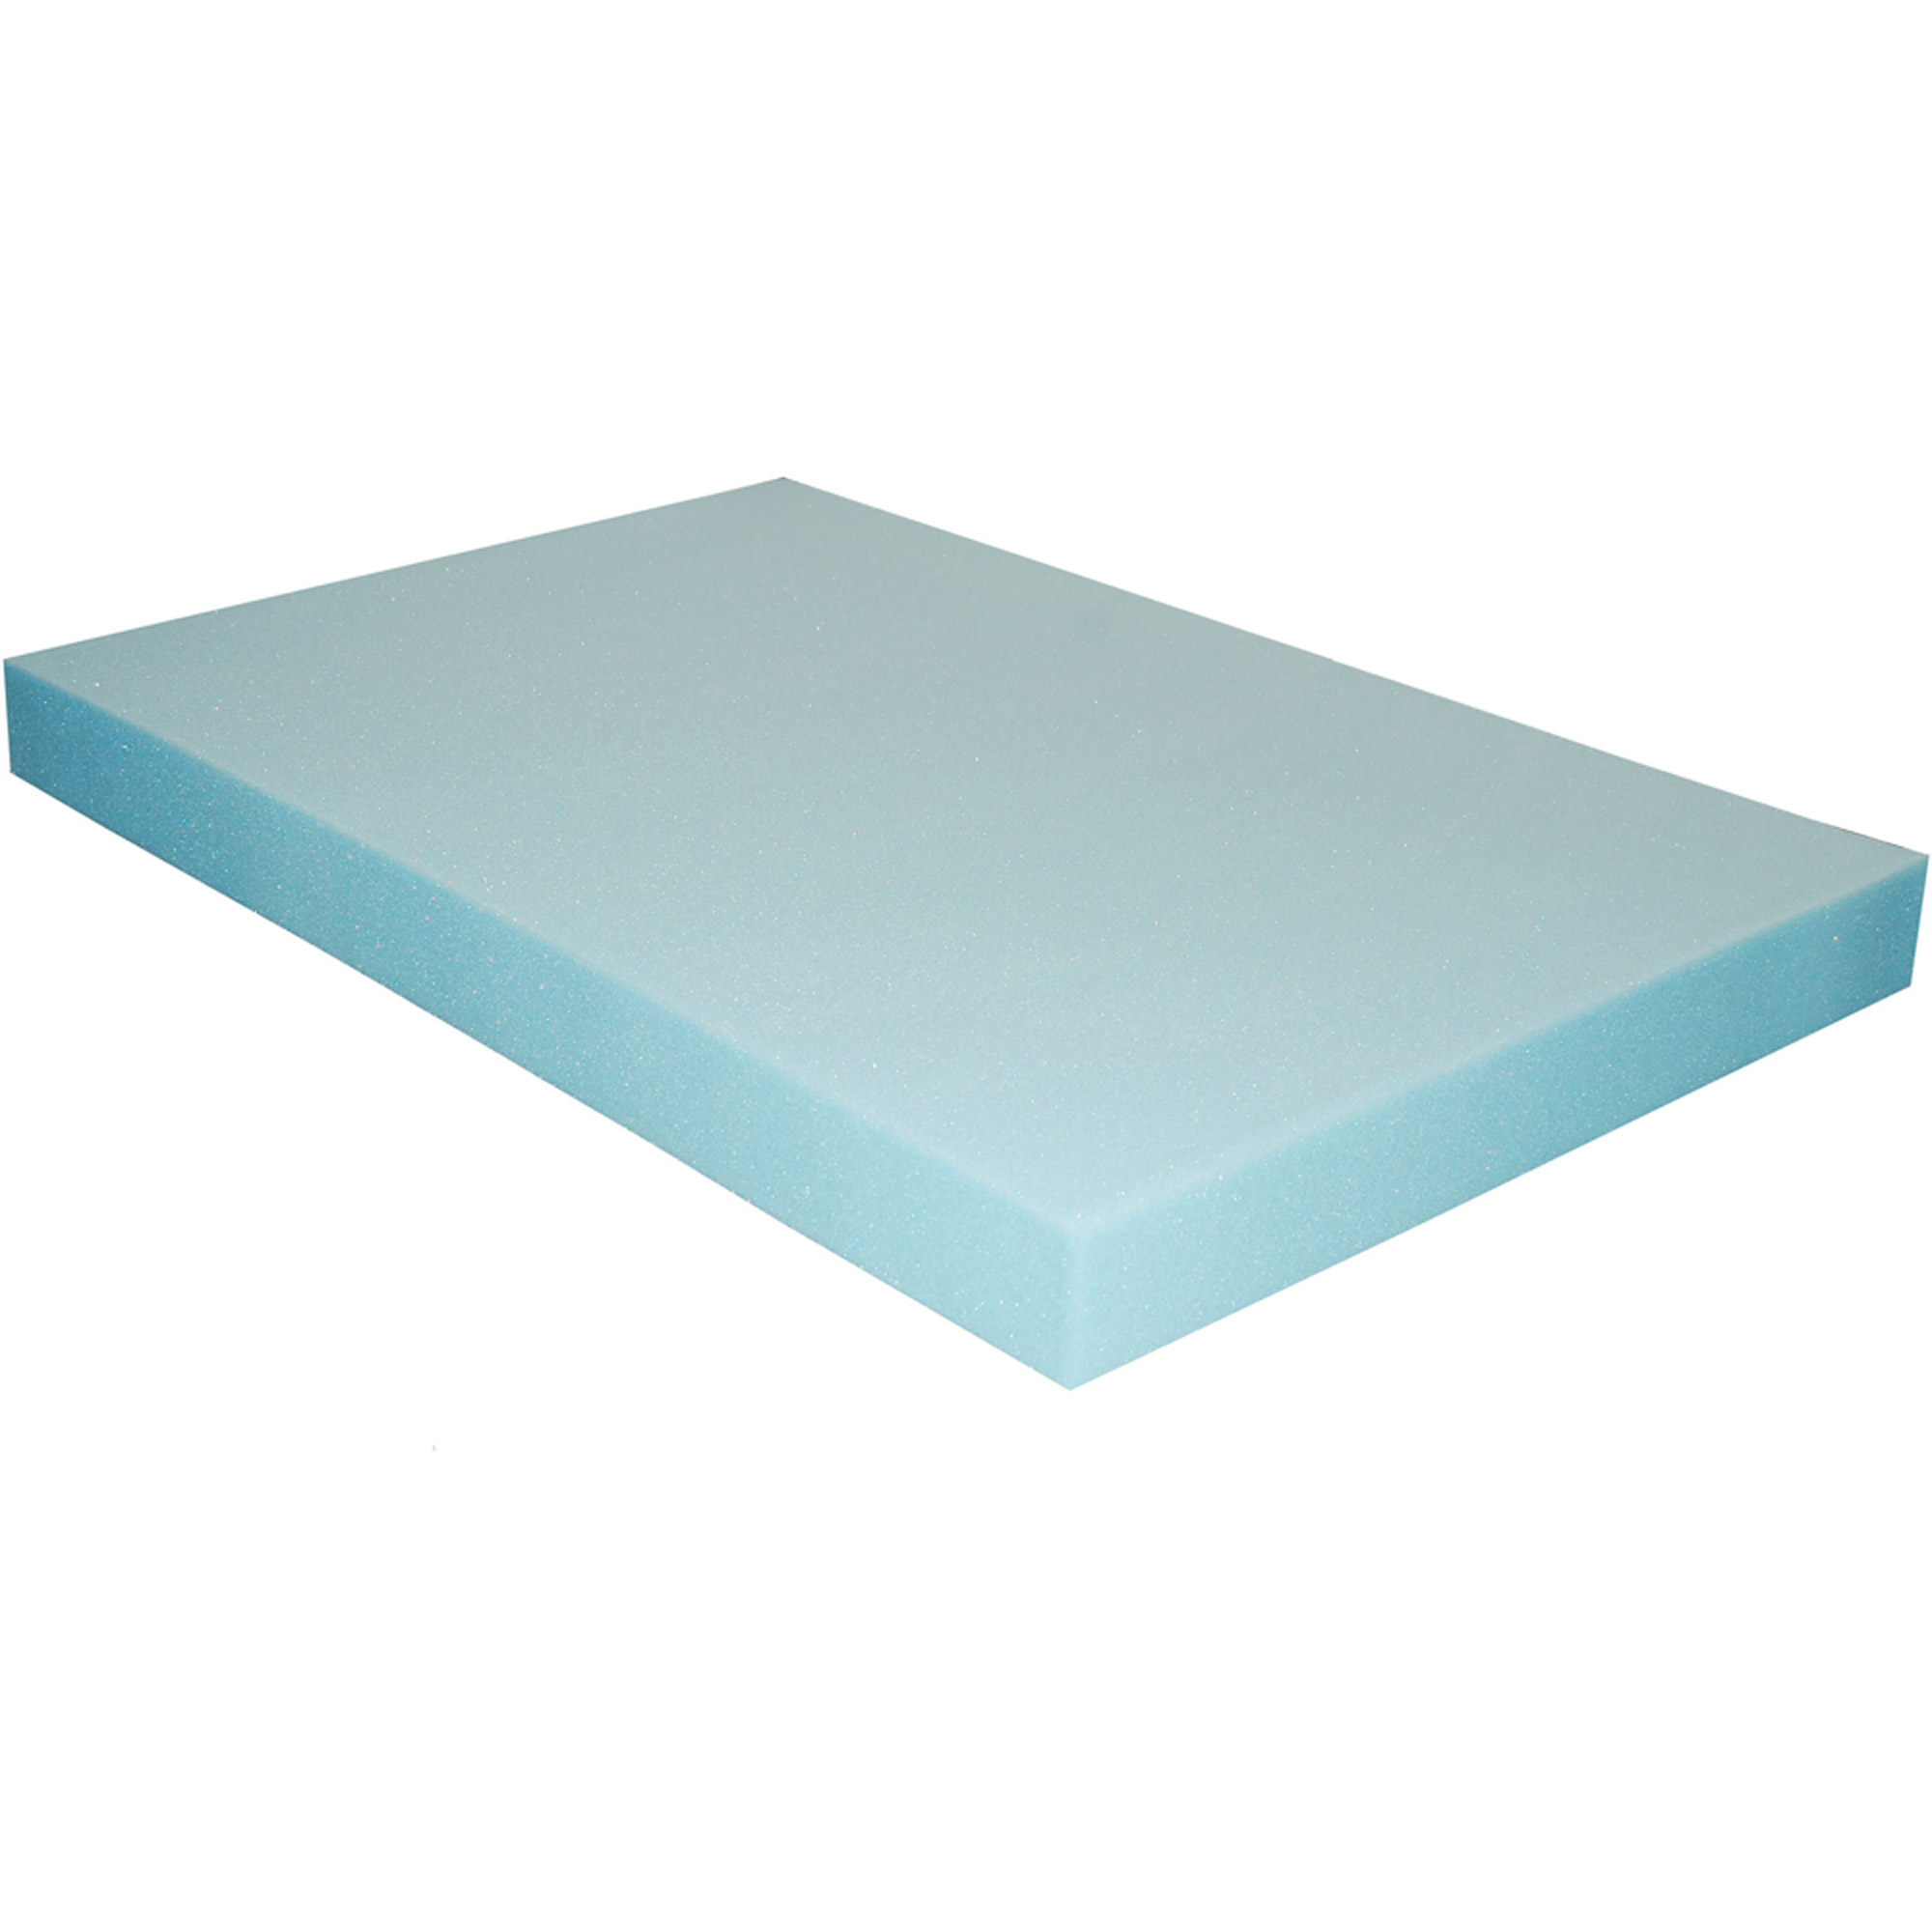 Upholstery Foam Blocks | Chair Foam Padding | High Density Upholstery Foam